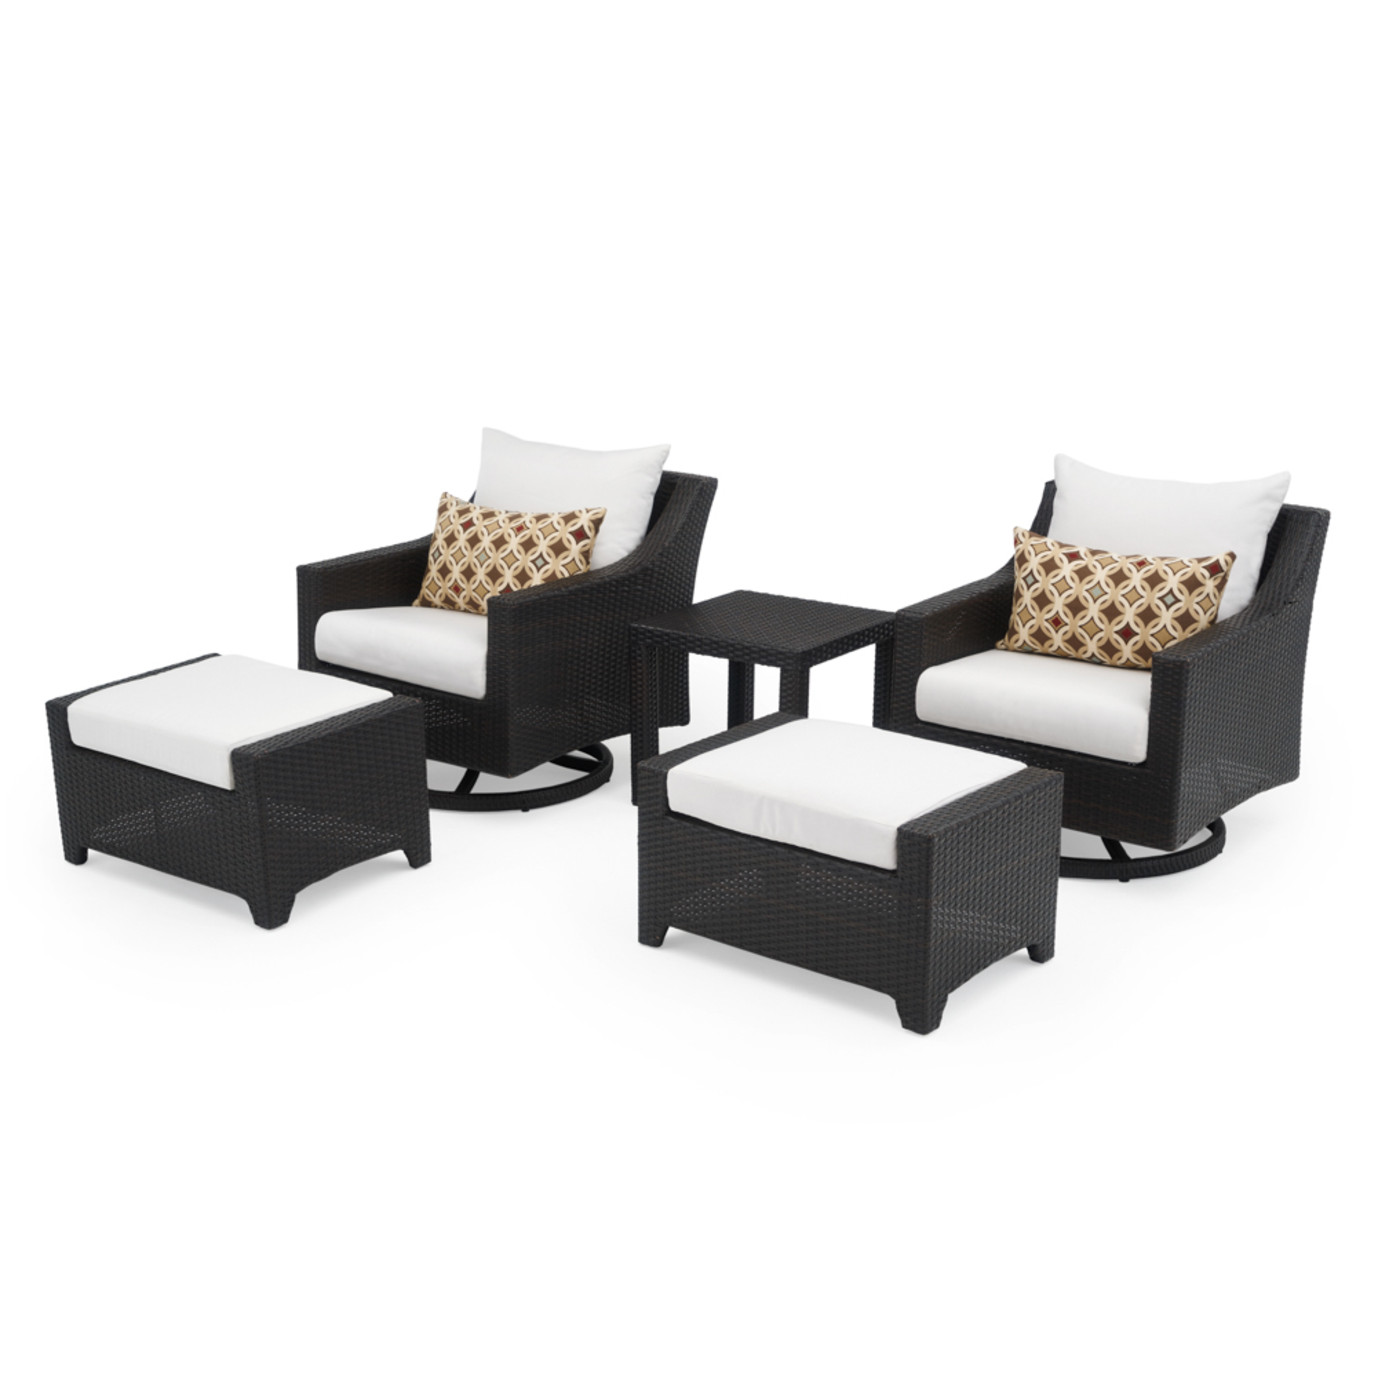 Deco 5pc Motion Club & Ottoman Set - Moroccan Cream